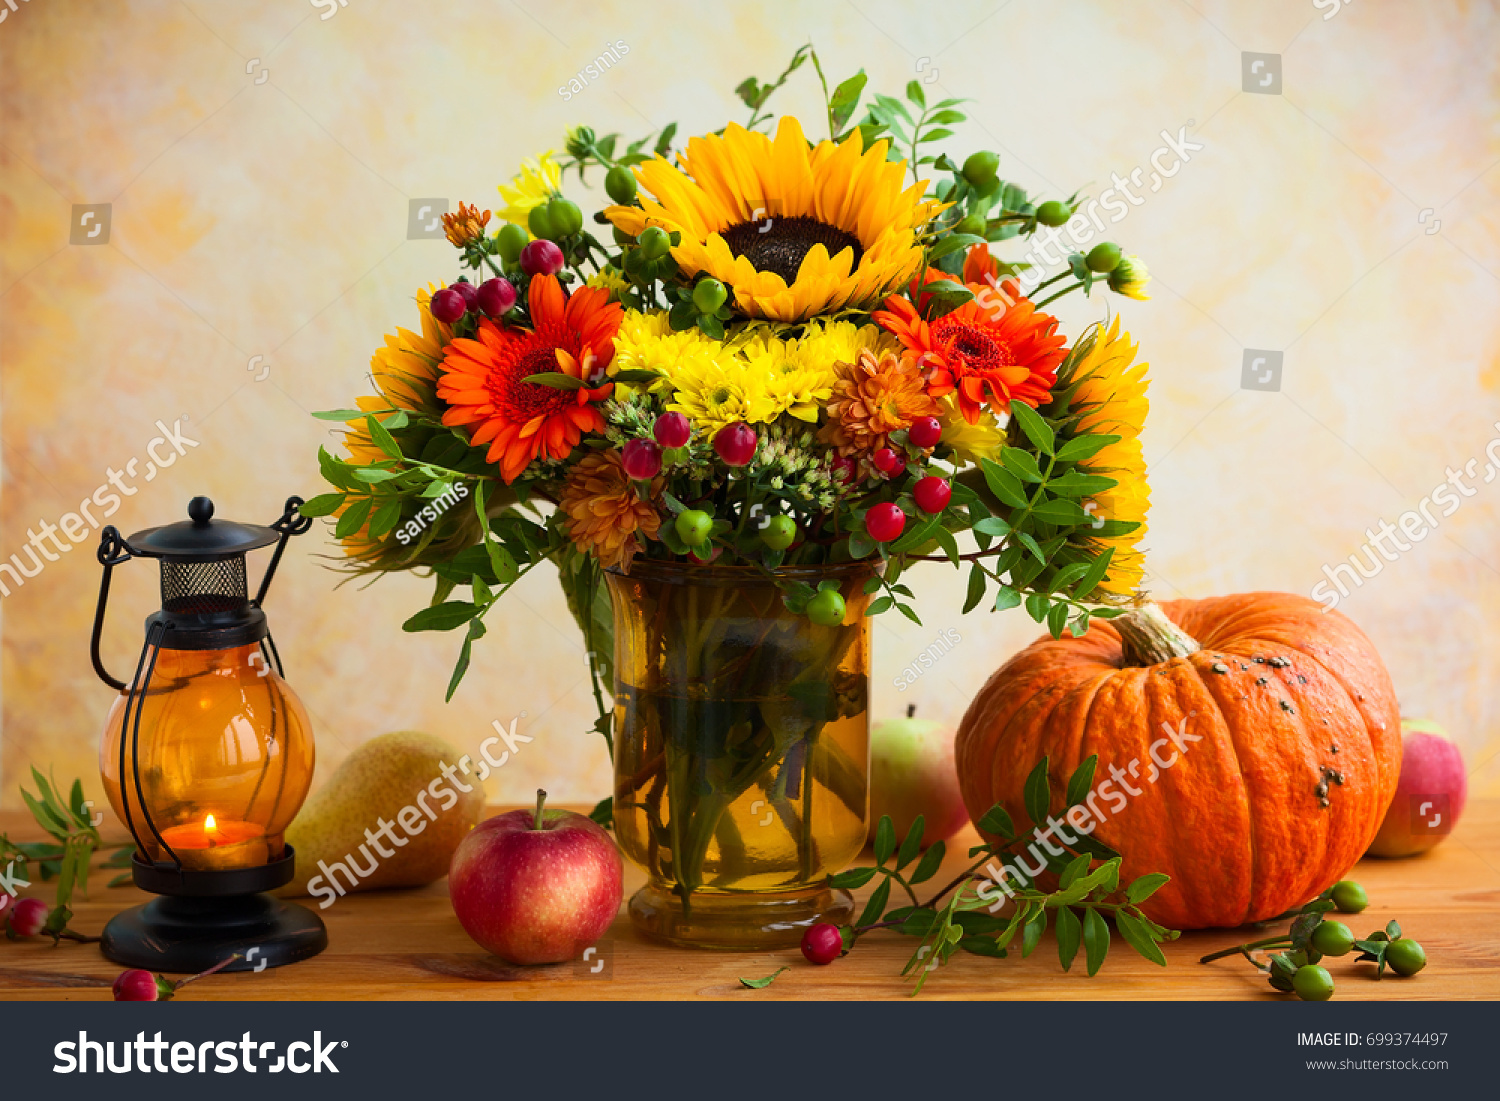 Autumn still life with flowers, pumpkin and fruits #699374497